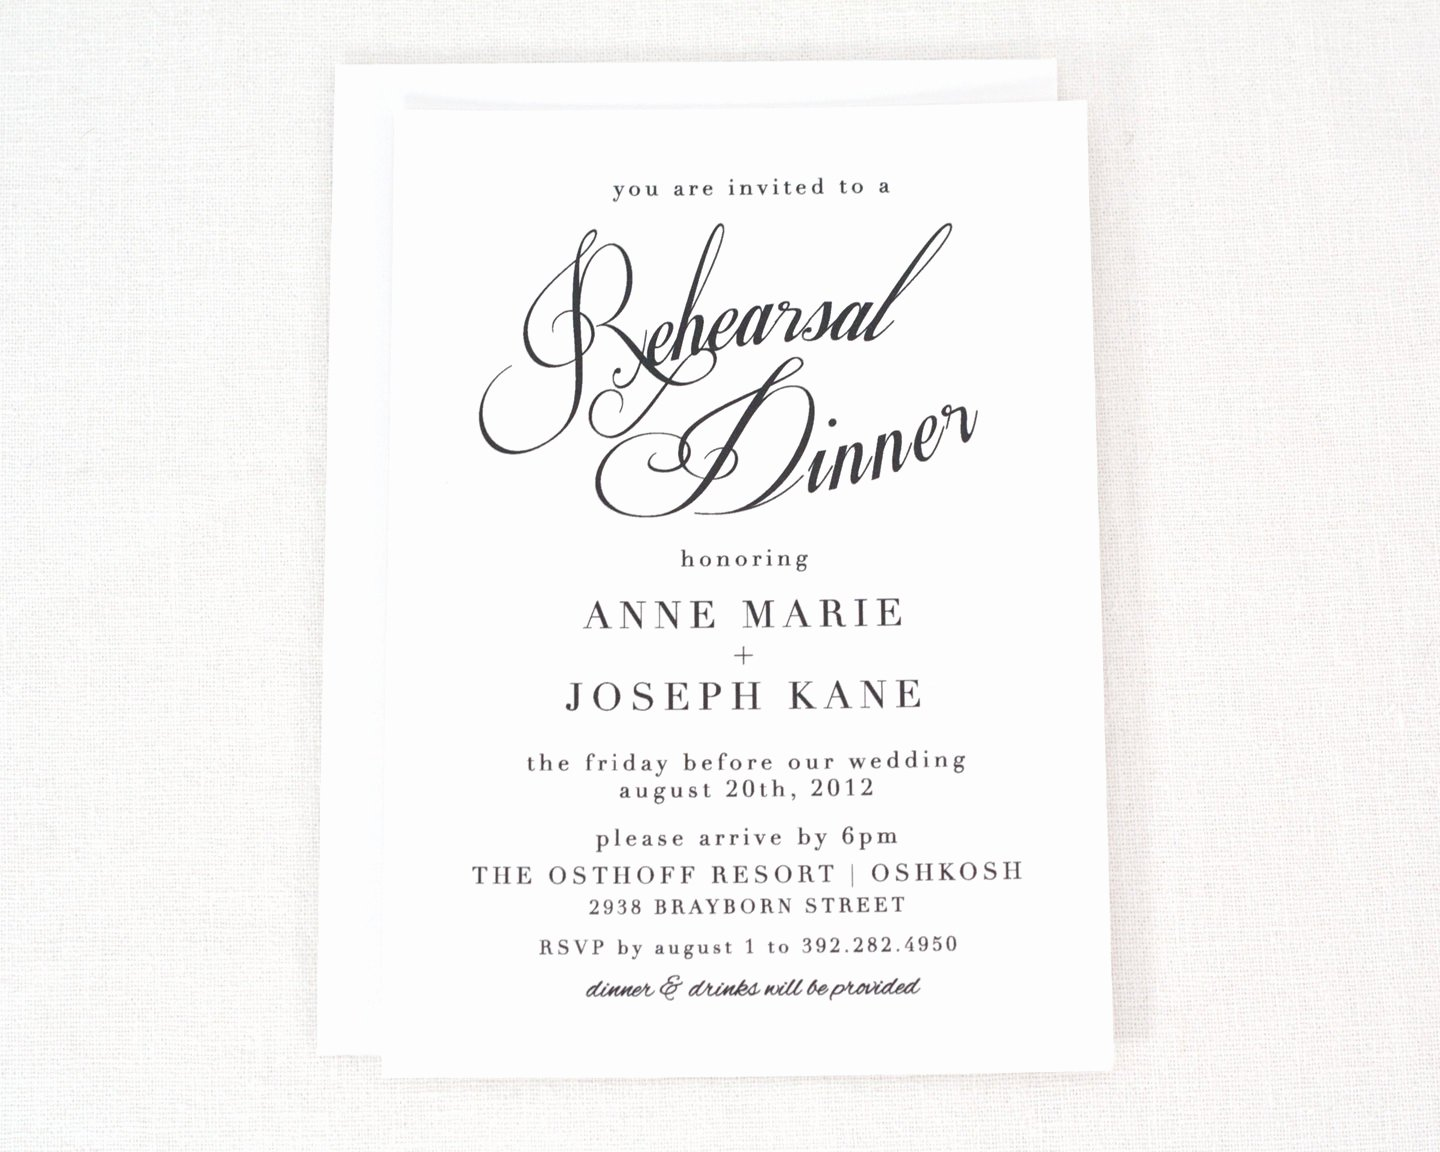 Dinner Invitation Template Free Beautiful Wedding Rehearsal Dinner Invitation Template Free